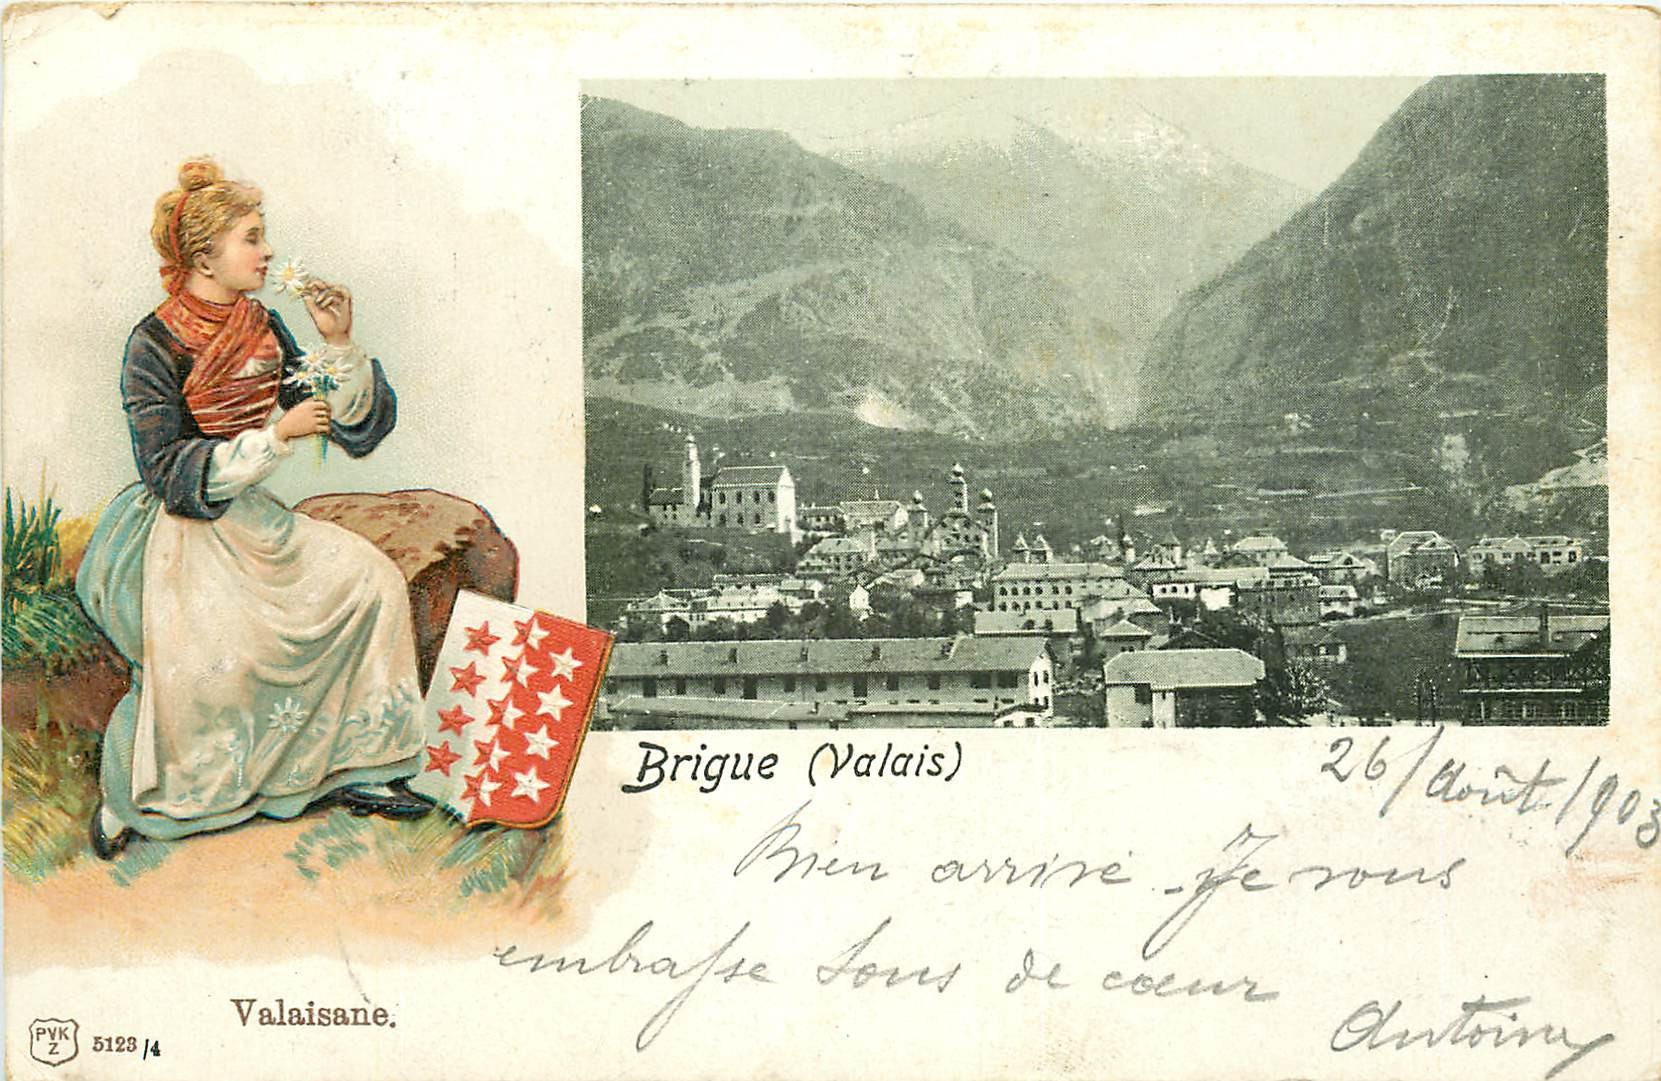 WW BRIGUE. Valaisane en Suisse 1903